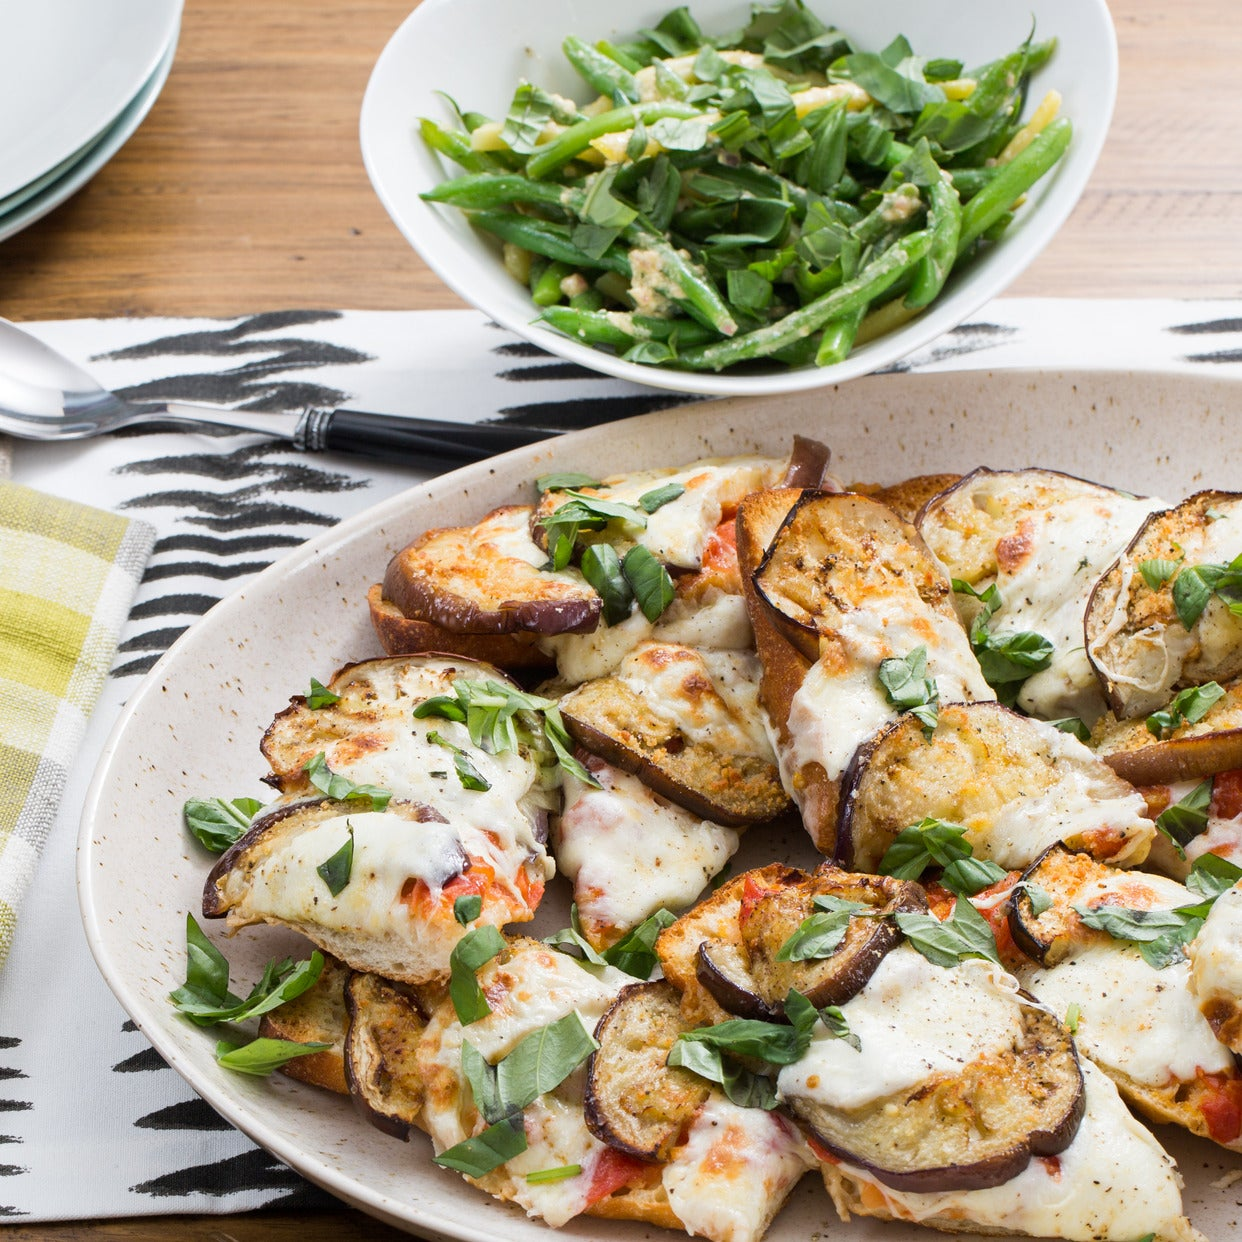 Eggplant French Bread Pizzas with Fresh Mozzarella & Summer Bean Salad